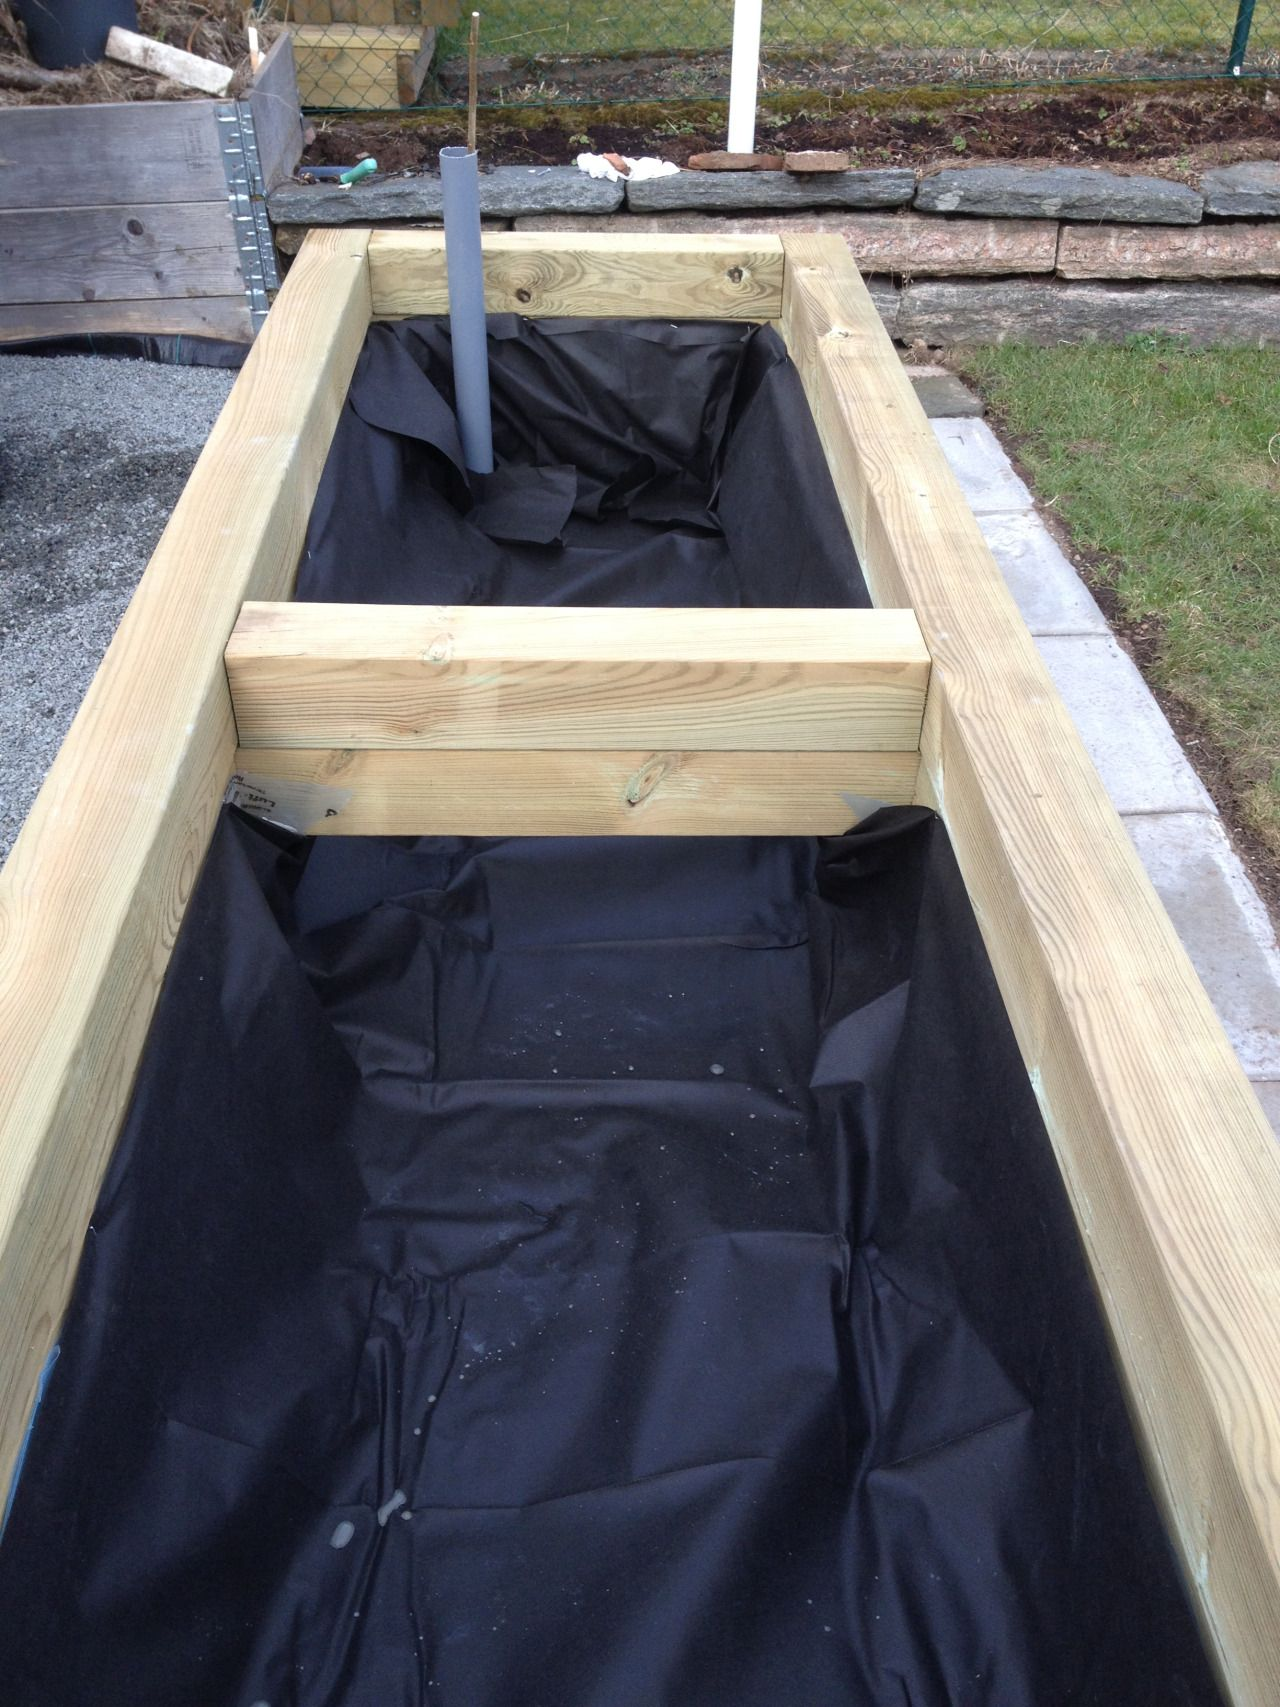 How to build a Wicking Bed Wicking beds, Raised garden